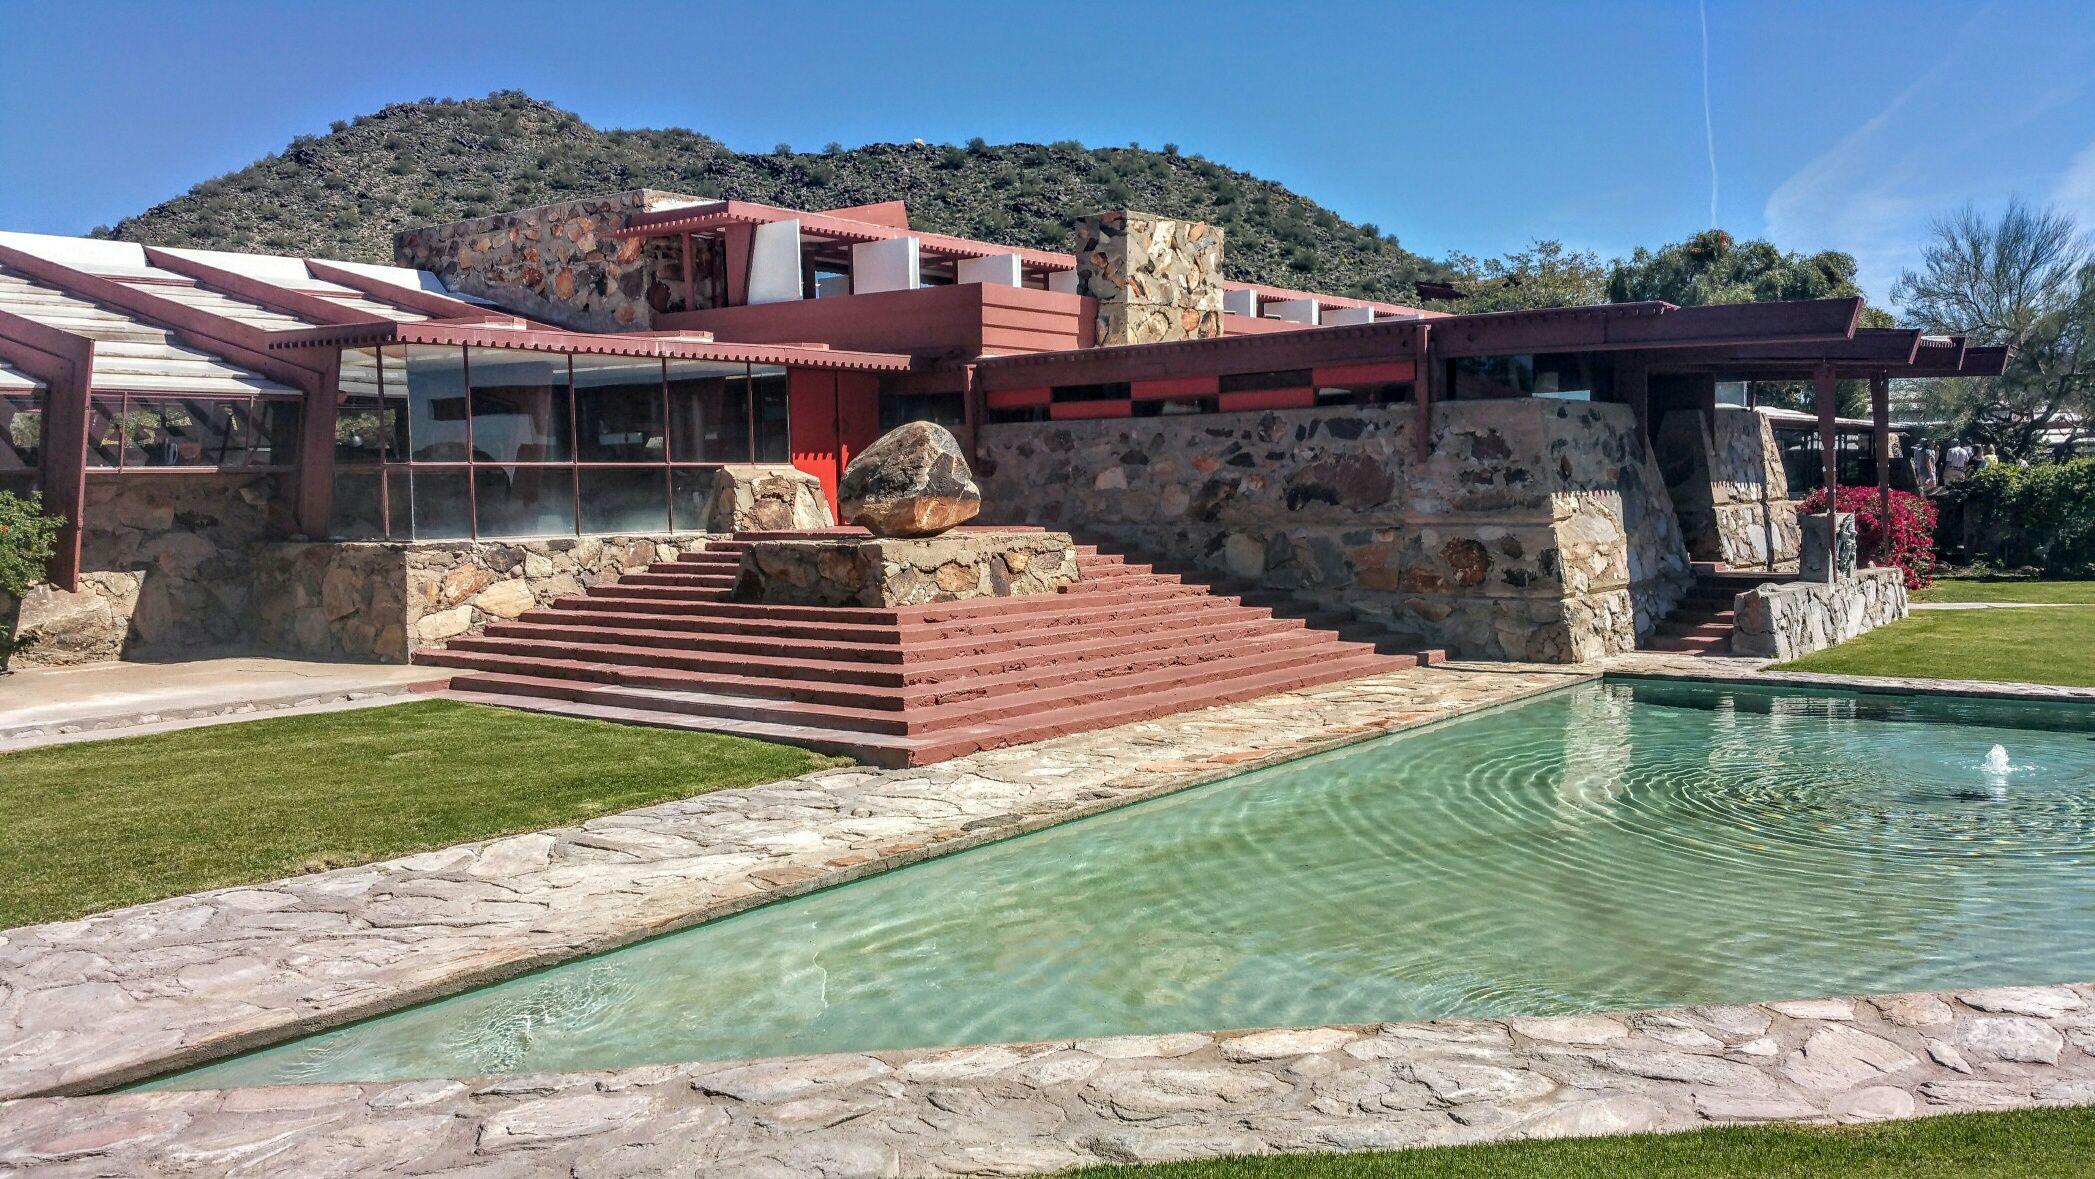 Visiting The Legendary Taliesin West Campus At The Frank Lloyd